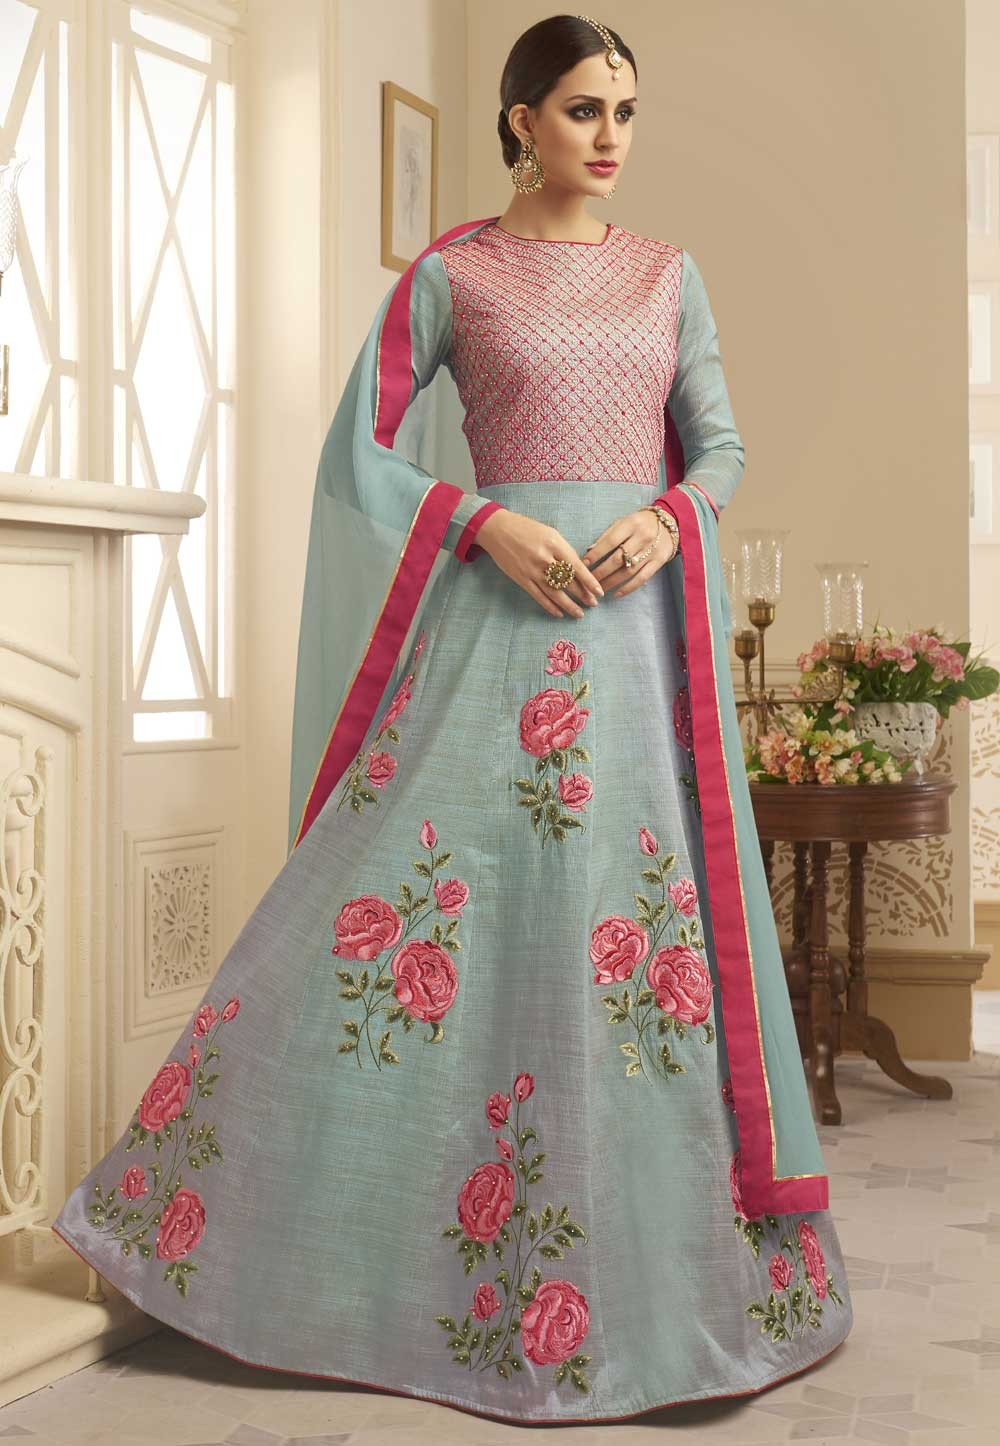 Designer Salwar Kameez Grey,Pink Color